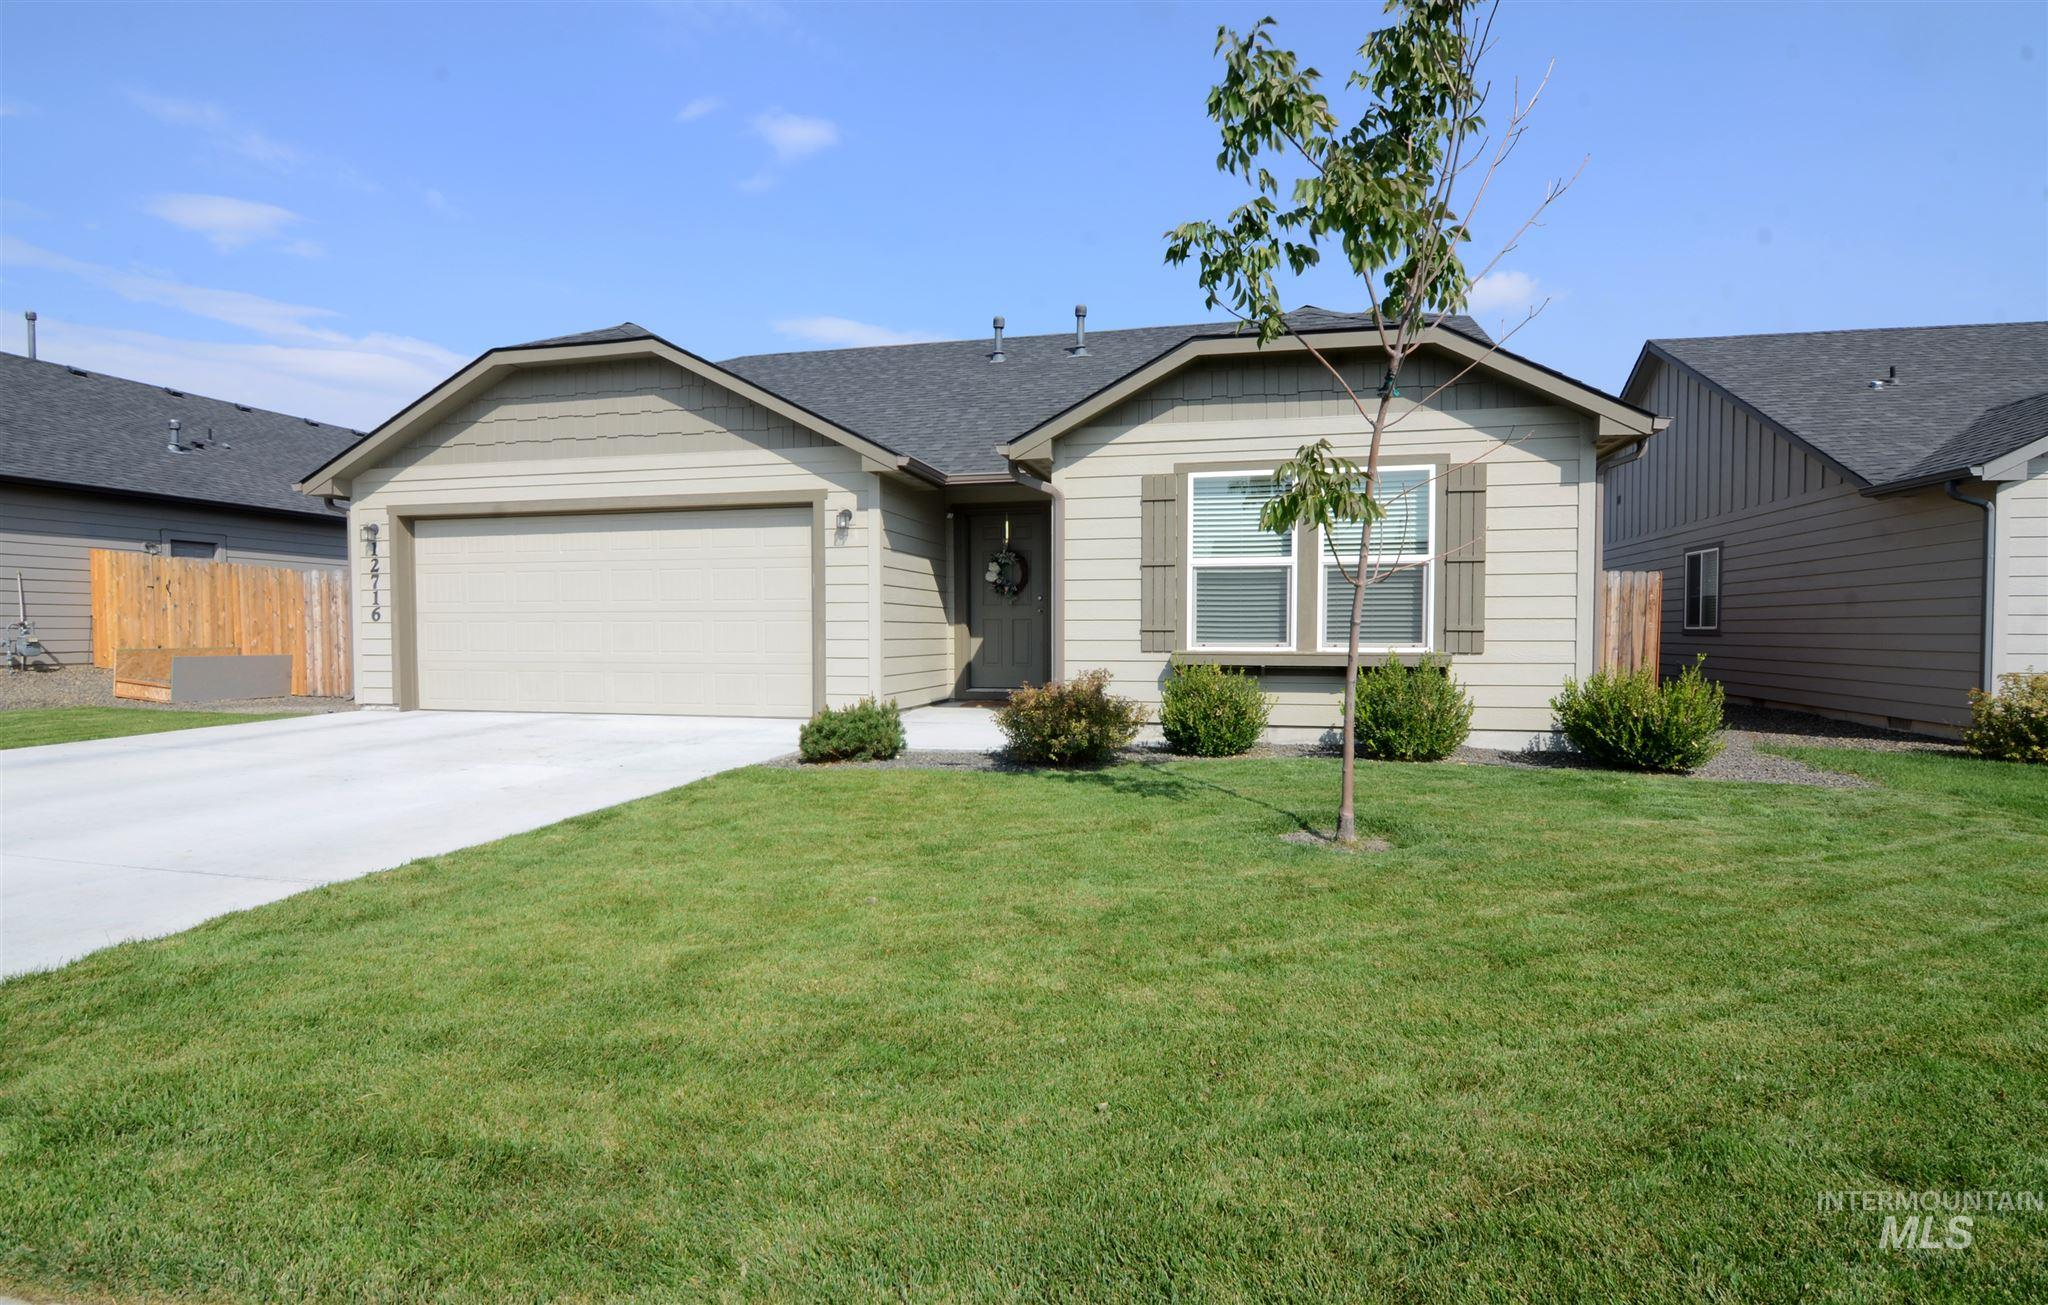 12716 Harrow Ct, Caldwell, Idaho 83607, 3 Bedrooms, 2 Bathrooms, Residential For Sale, Price $275,000, 98781611